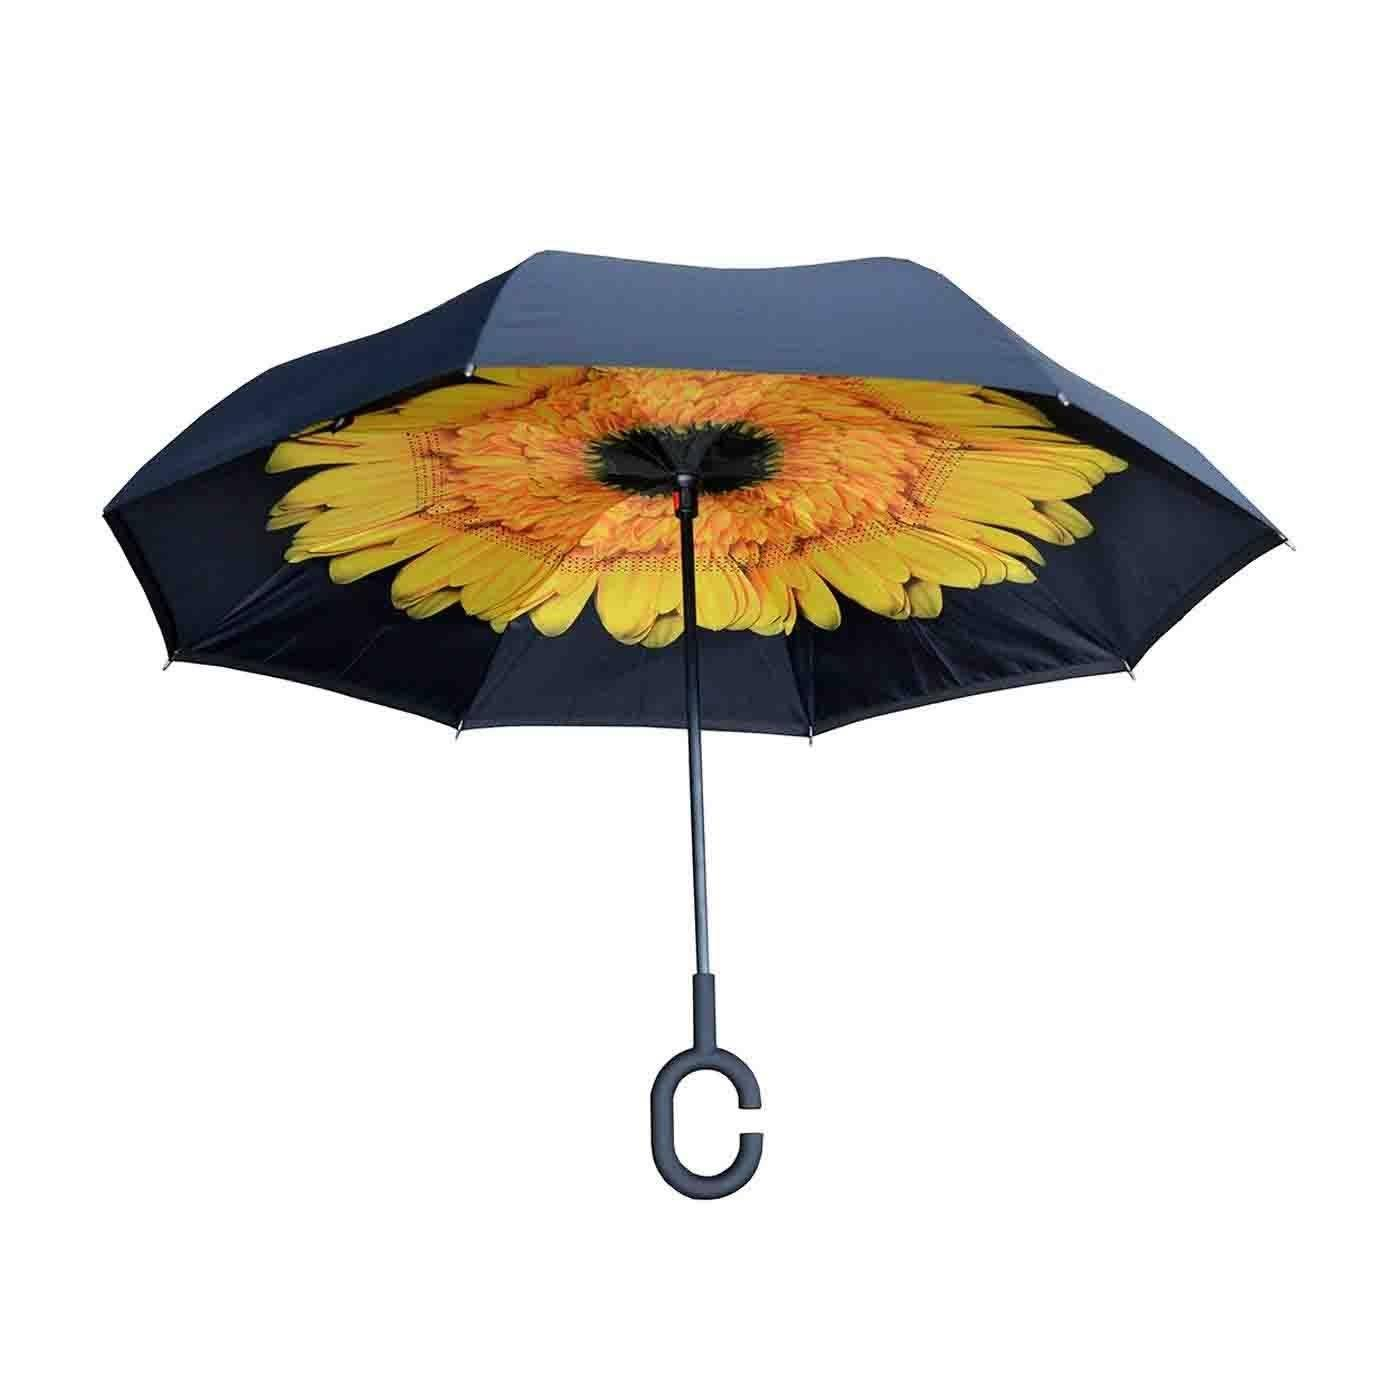 Topsy Turvy Black - Black & Yellow Sunflower Inverted Umbrella